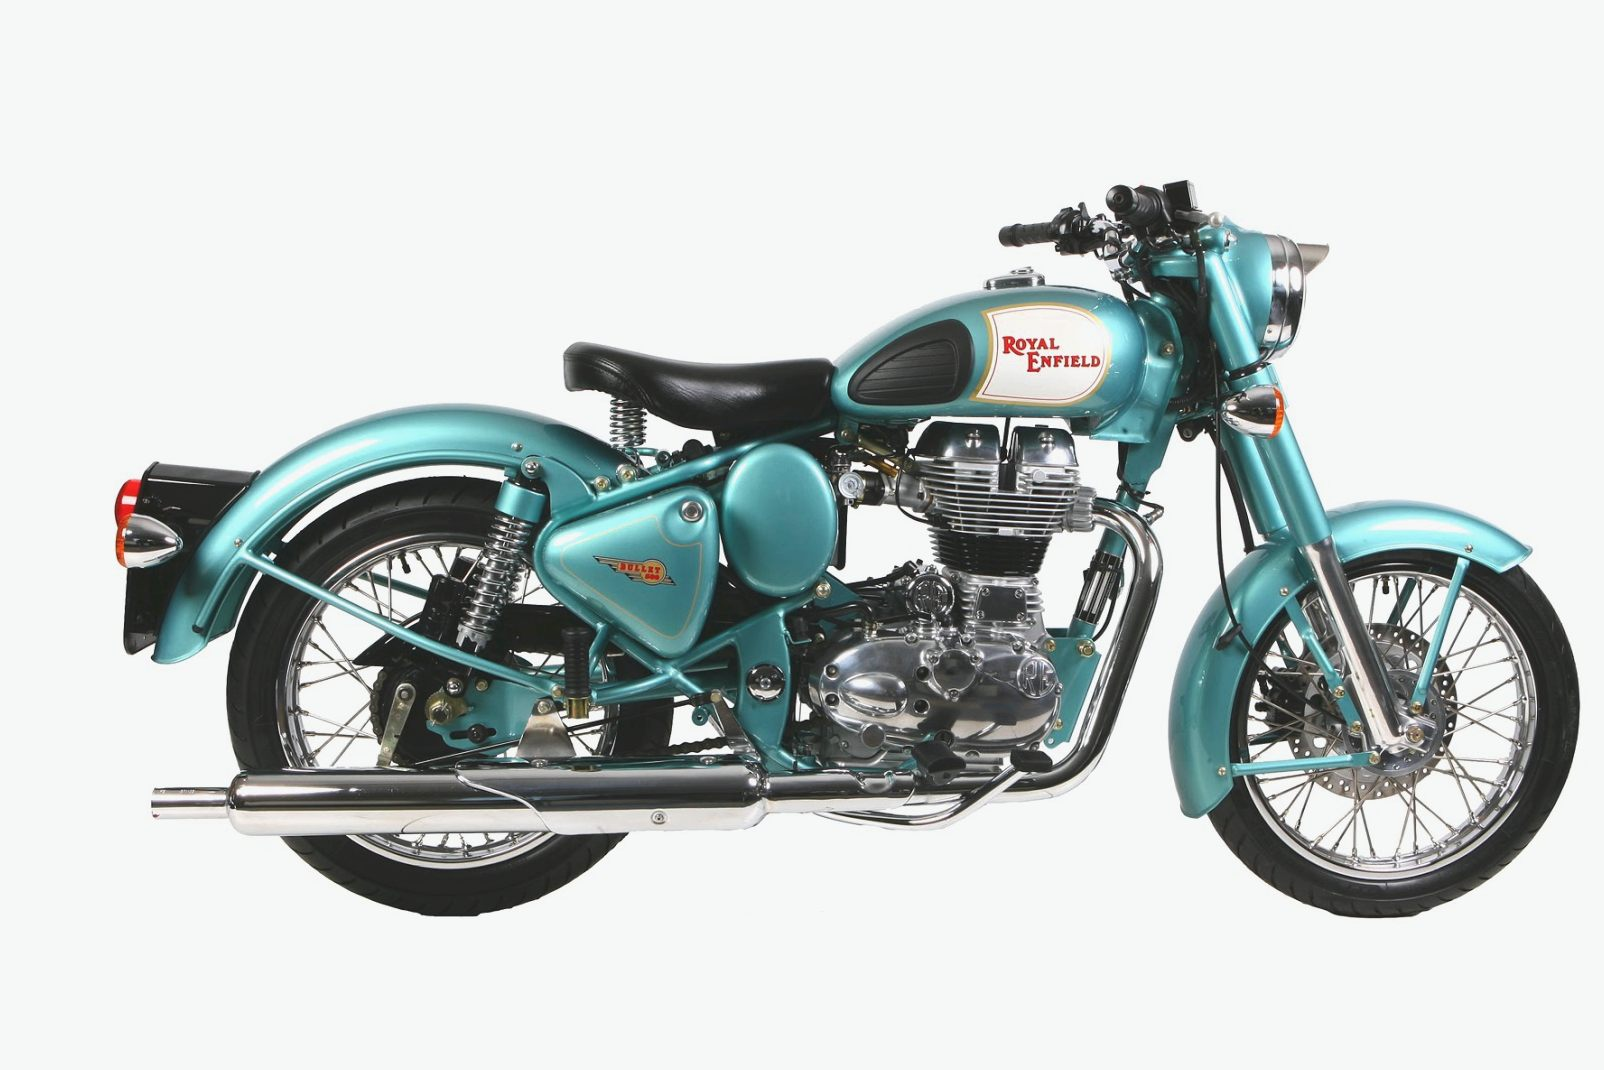 2004 Enfield US Classic 350 #4